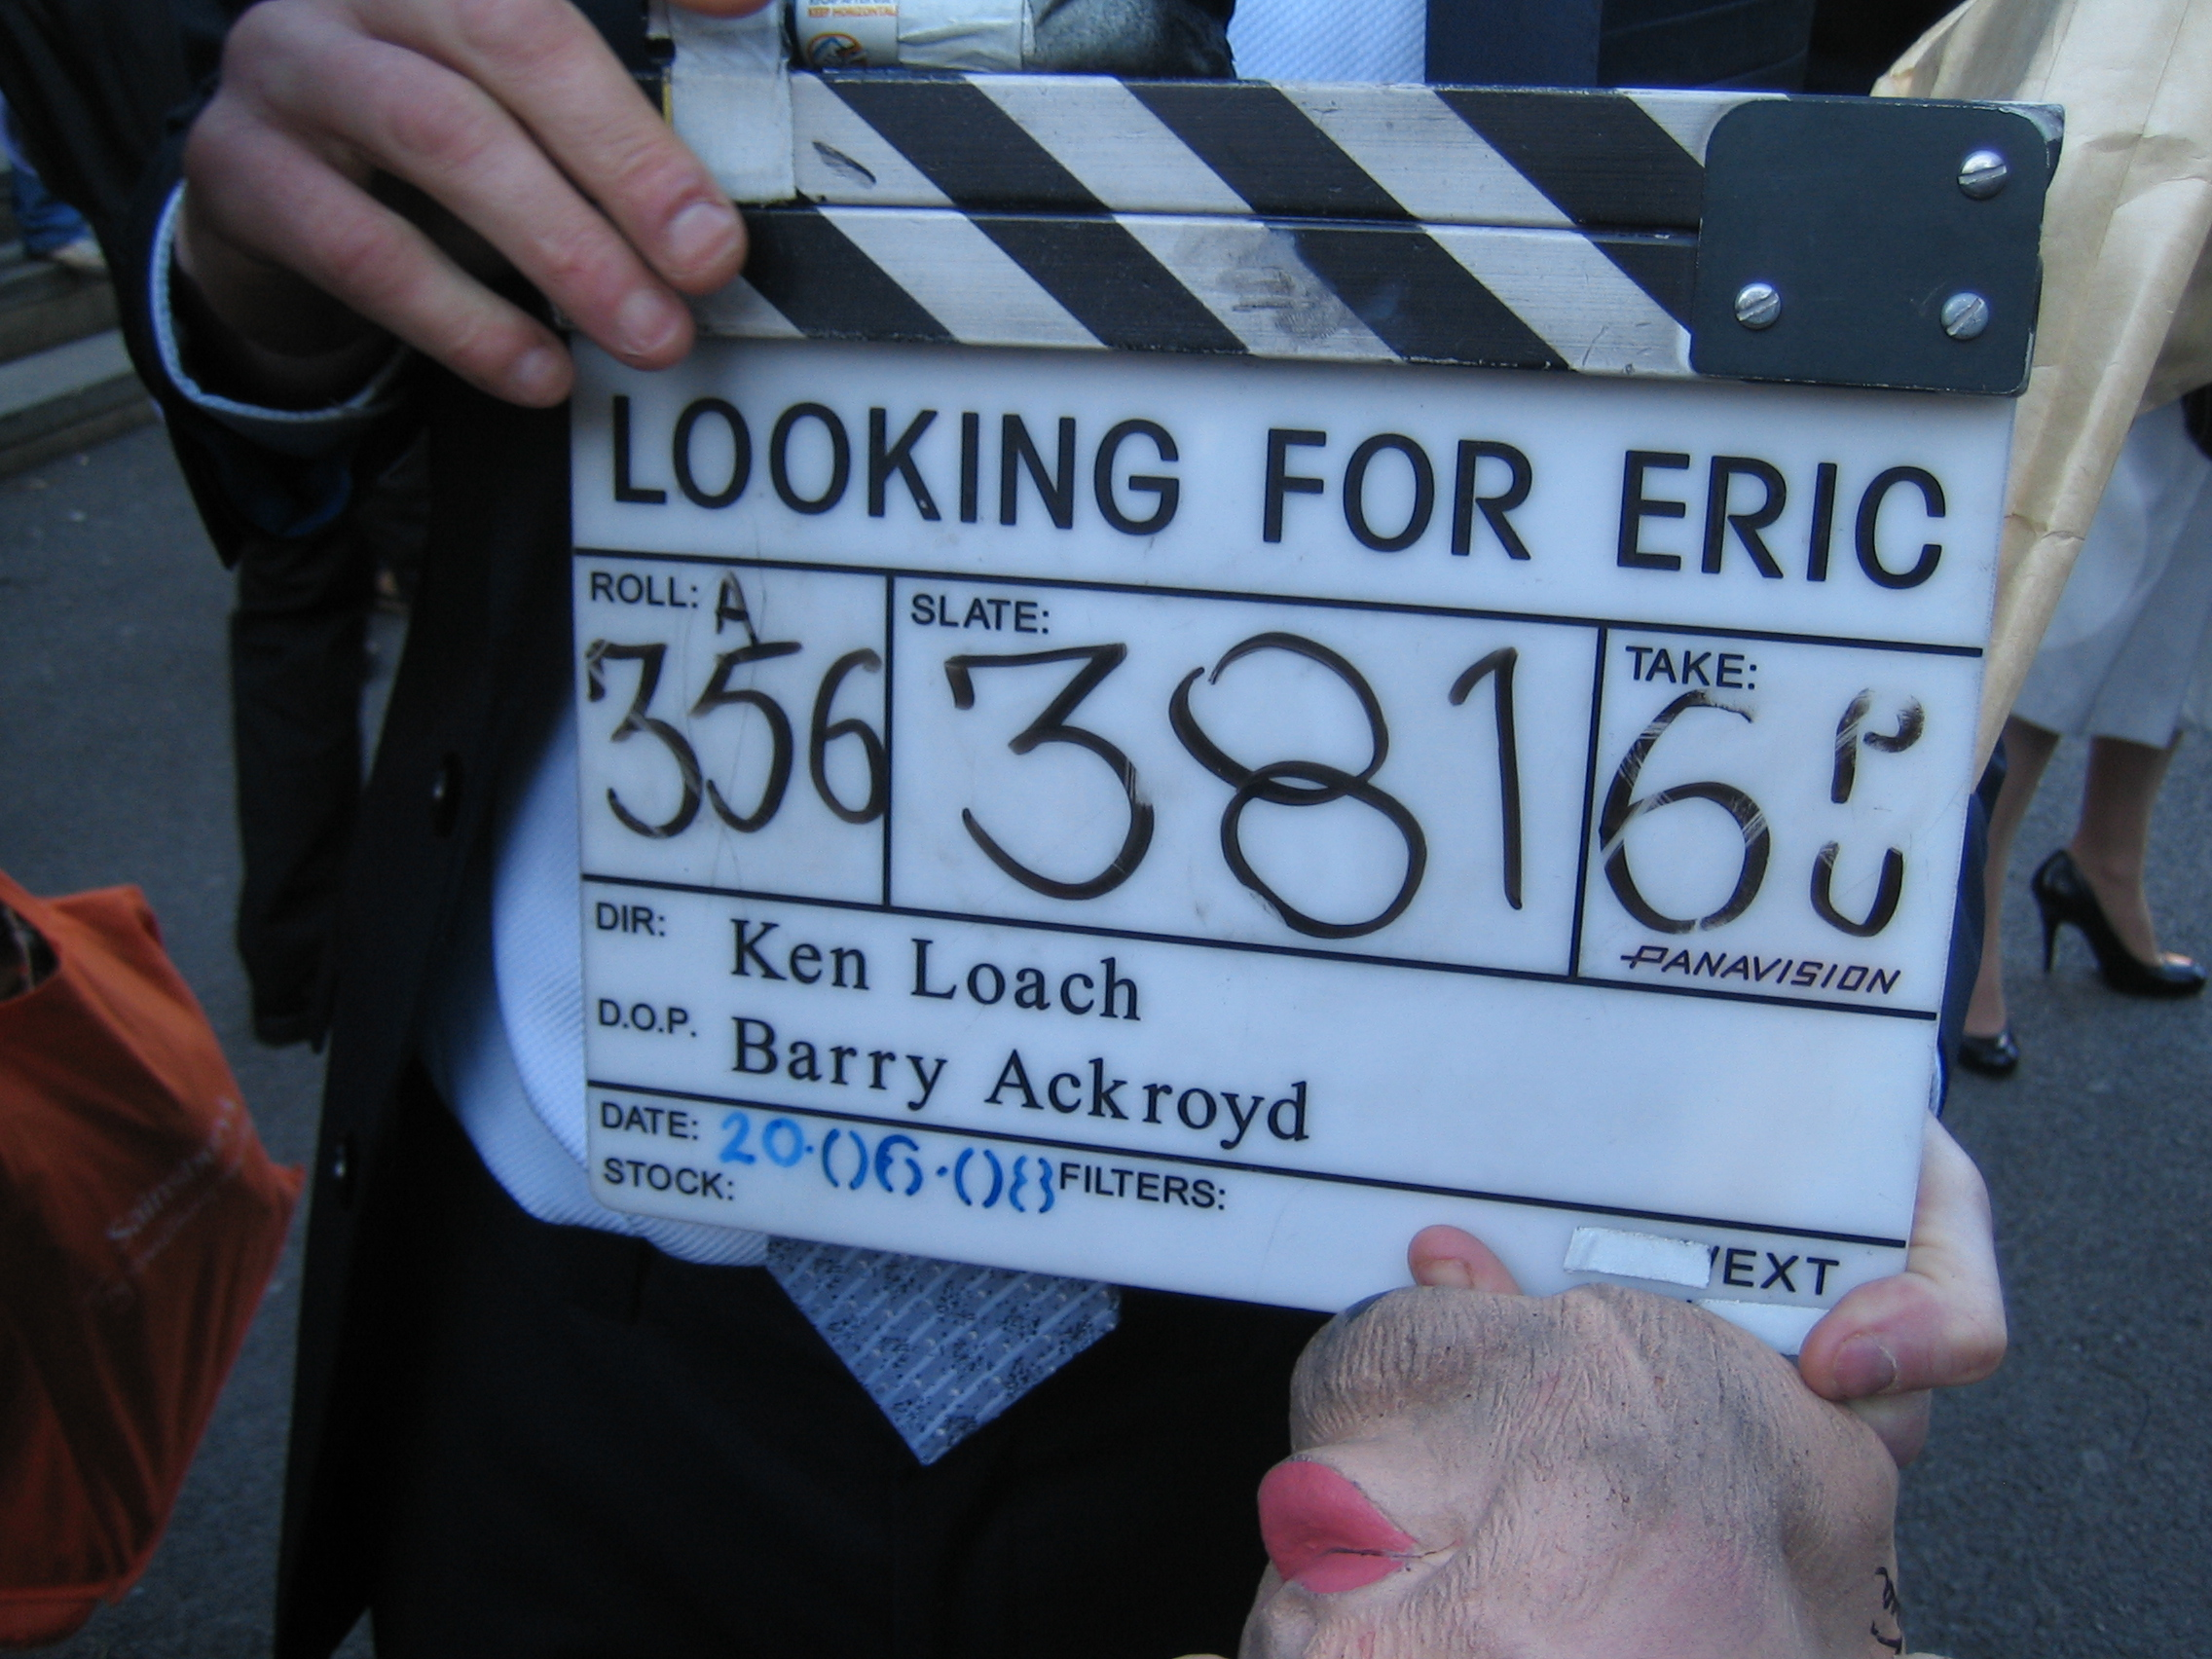 Looking for Eric 035.JPG